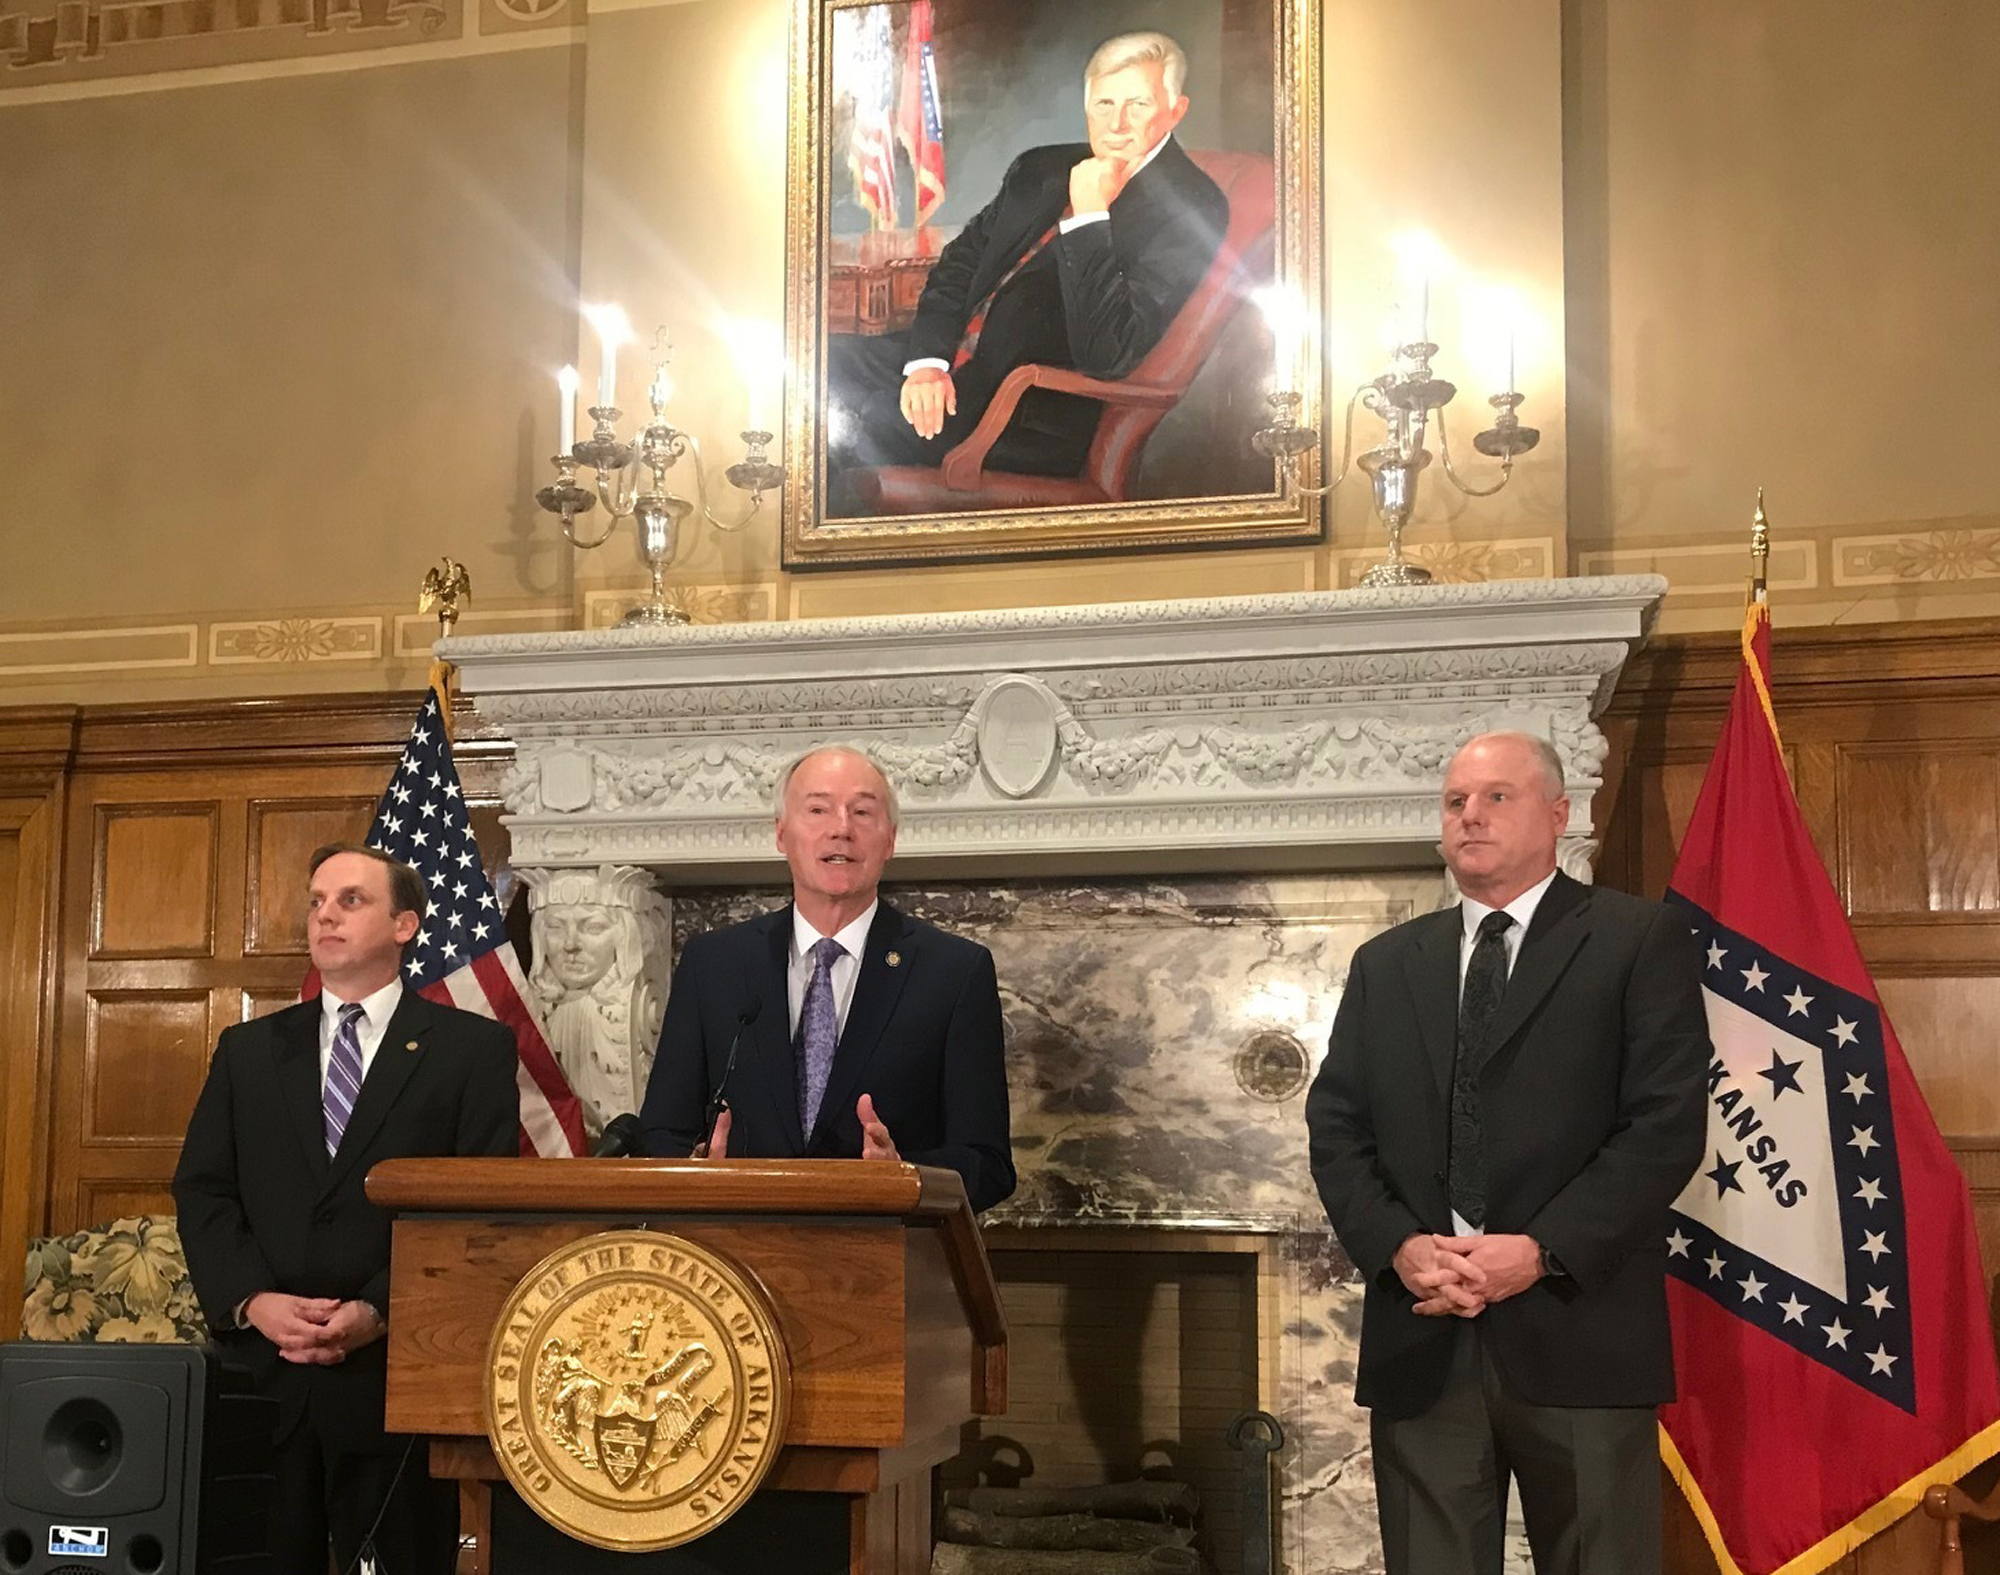 Arkansas Gov. Asa Hutchinson speaks at a news conference about a ruling against the state's work requirement for its Medicaid expansion program at the state Capitol in Little Rock, Ark. on March 28, 2019.